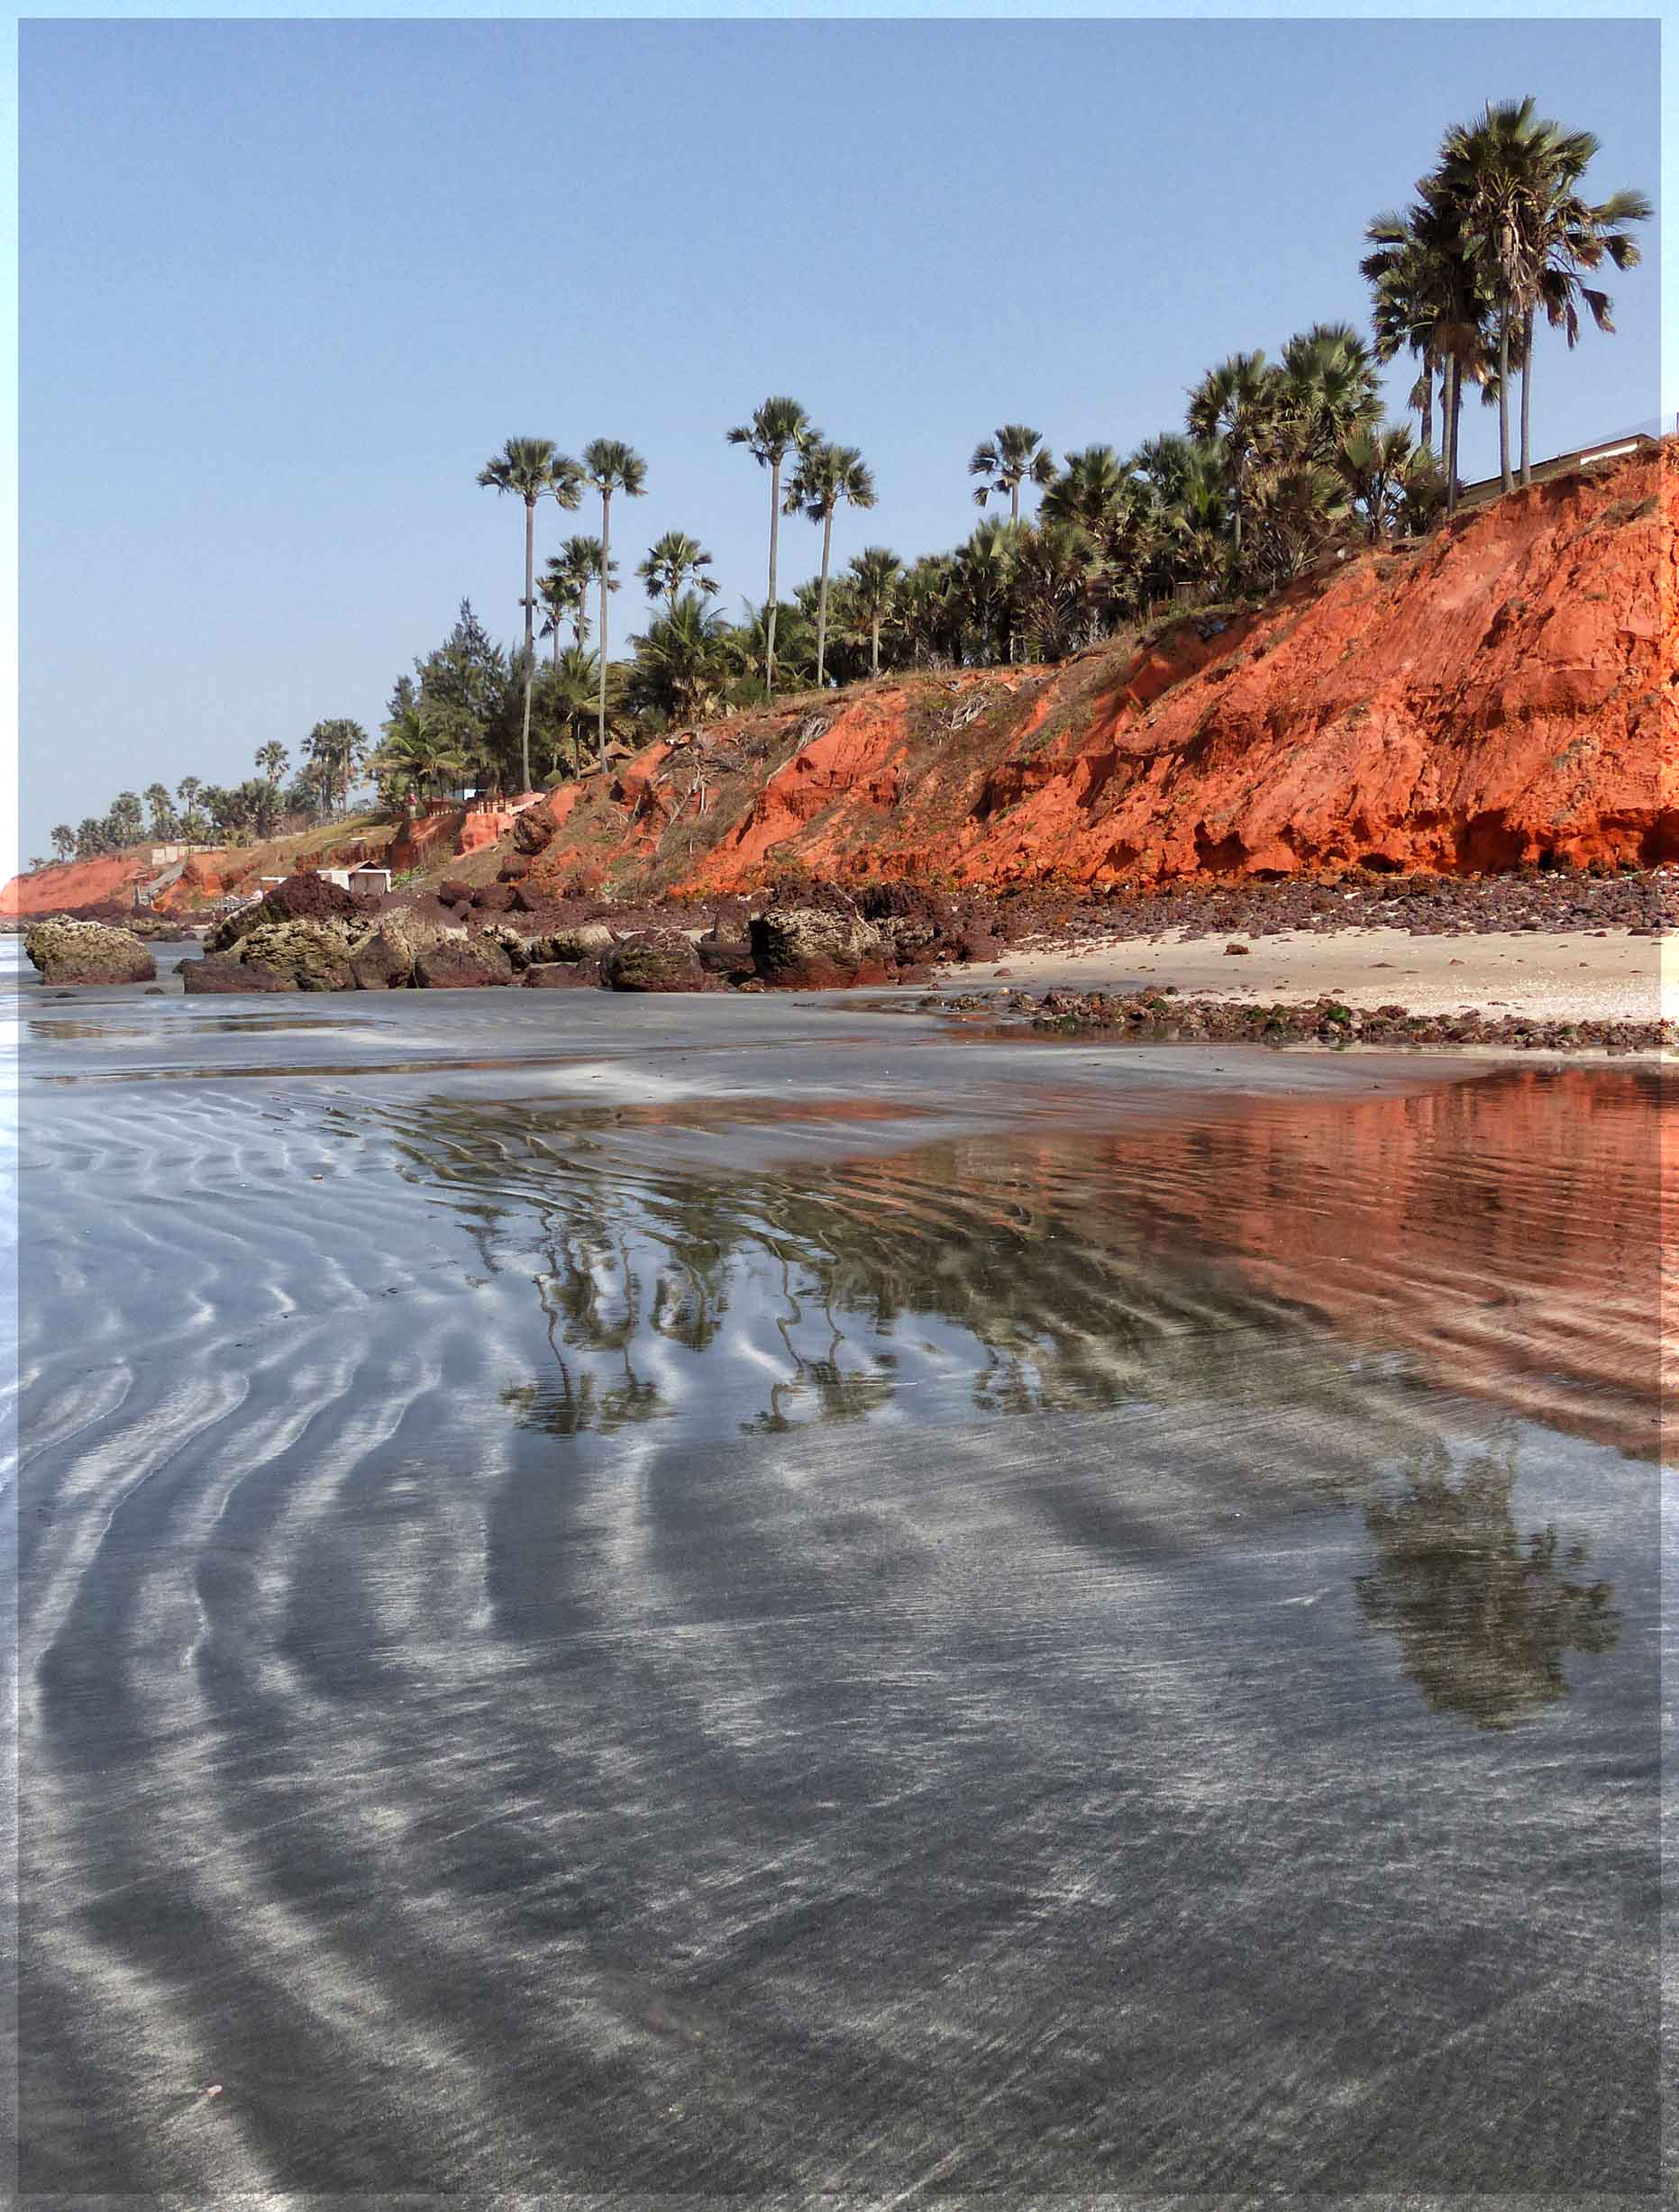 Low red cliffs and palm trees